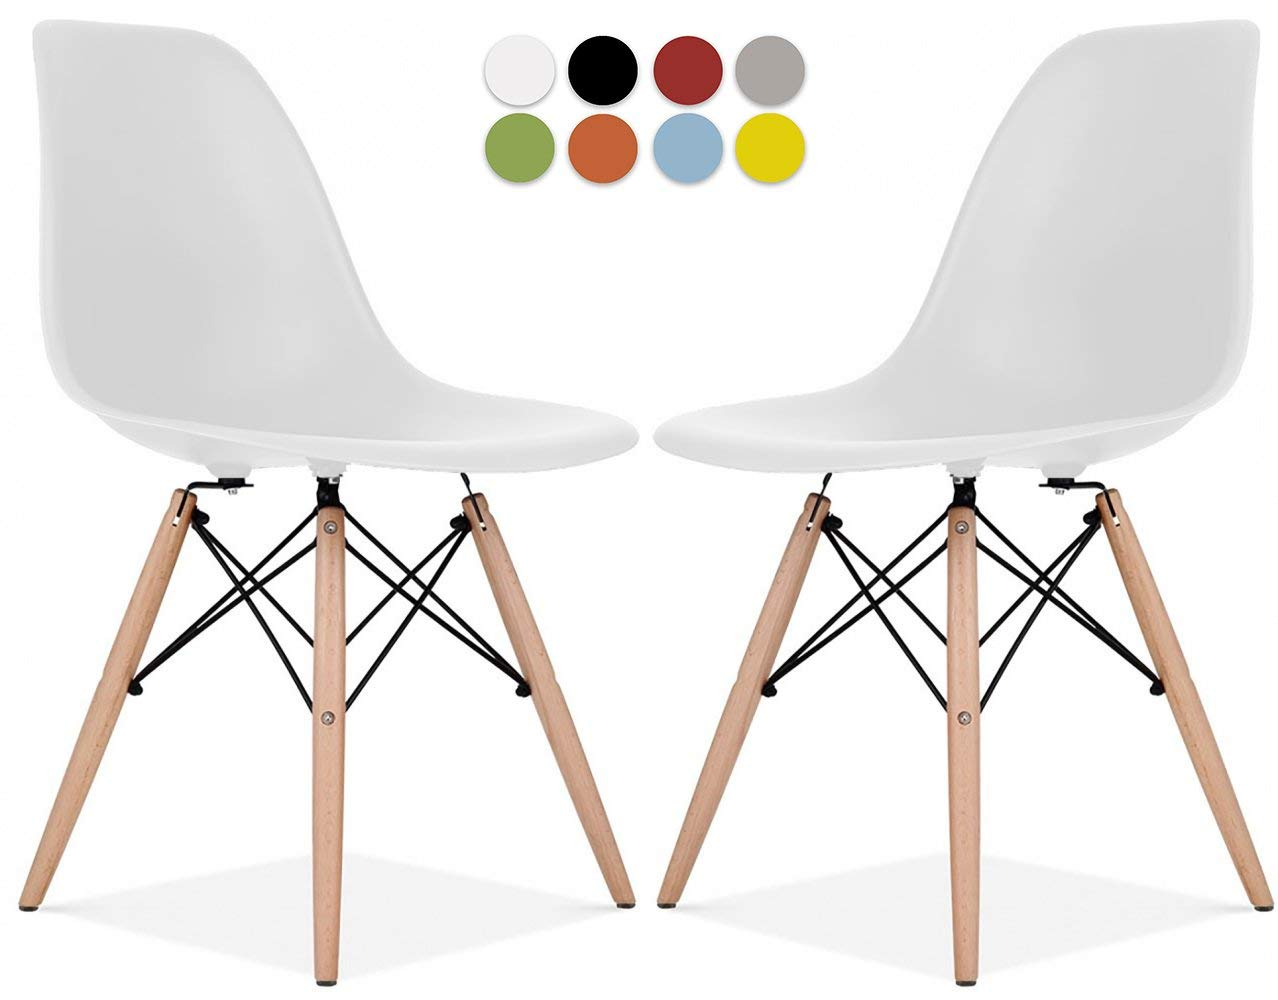 Le Vigan Mid Century Modern Molded Shell Chair with Dowel Wood Eiffel Legs - Set of 2 - for Dining Room, Kitchen, Bedroom, Lounge - Easy-Assemble & Clean - White